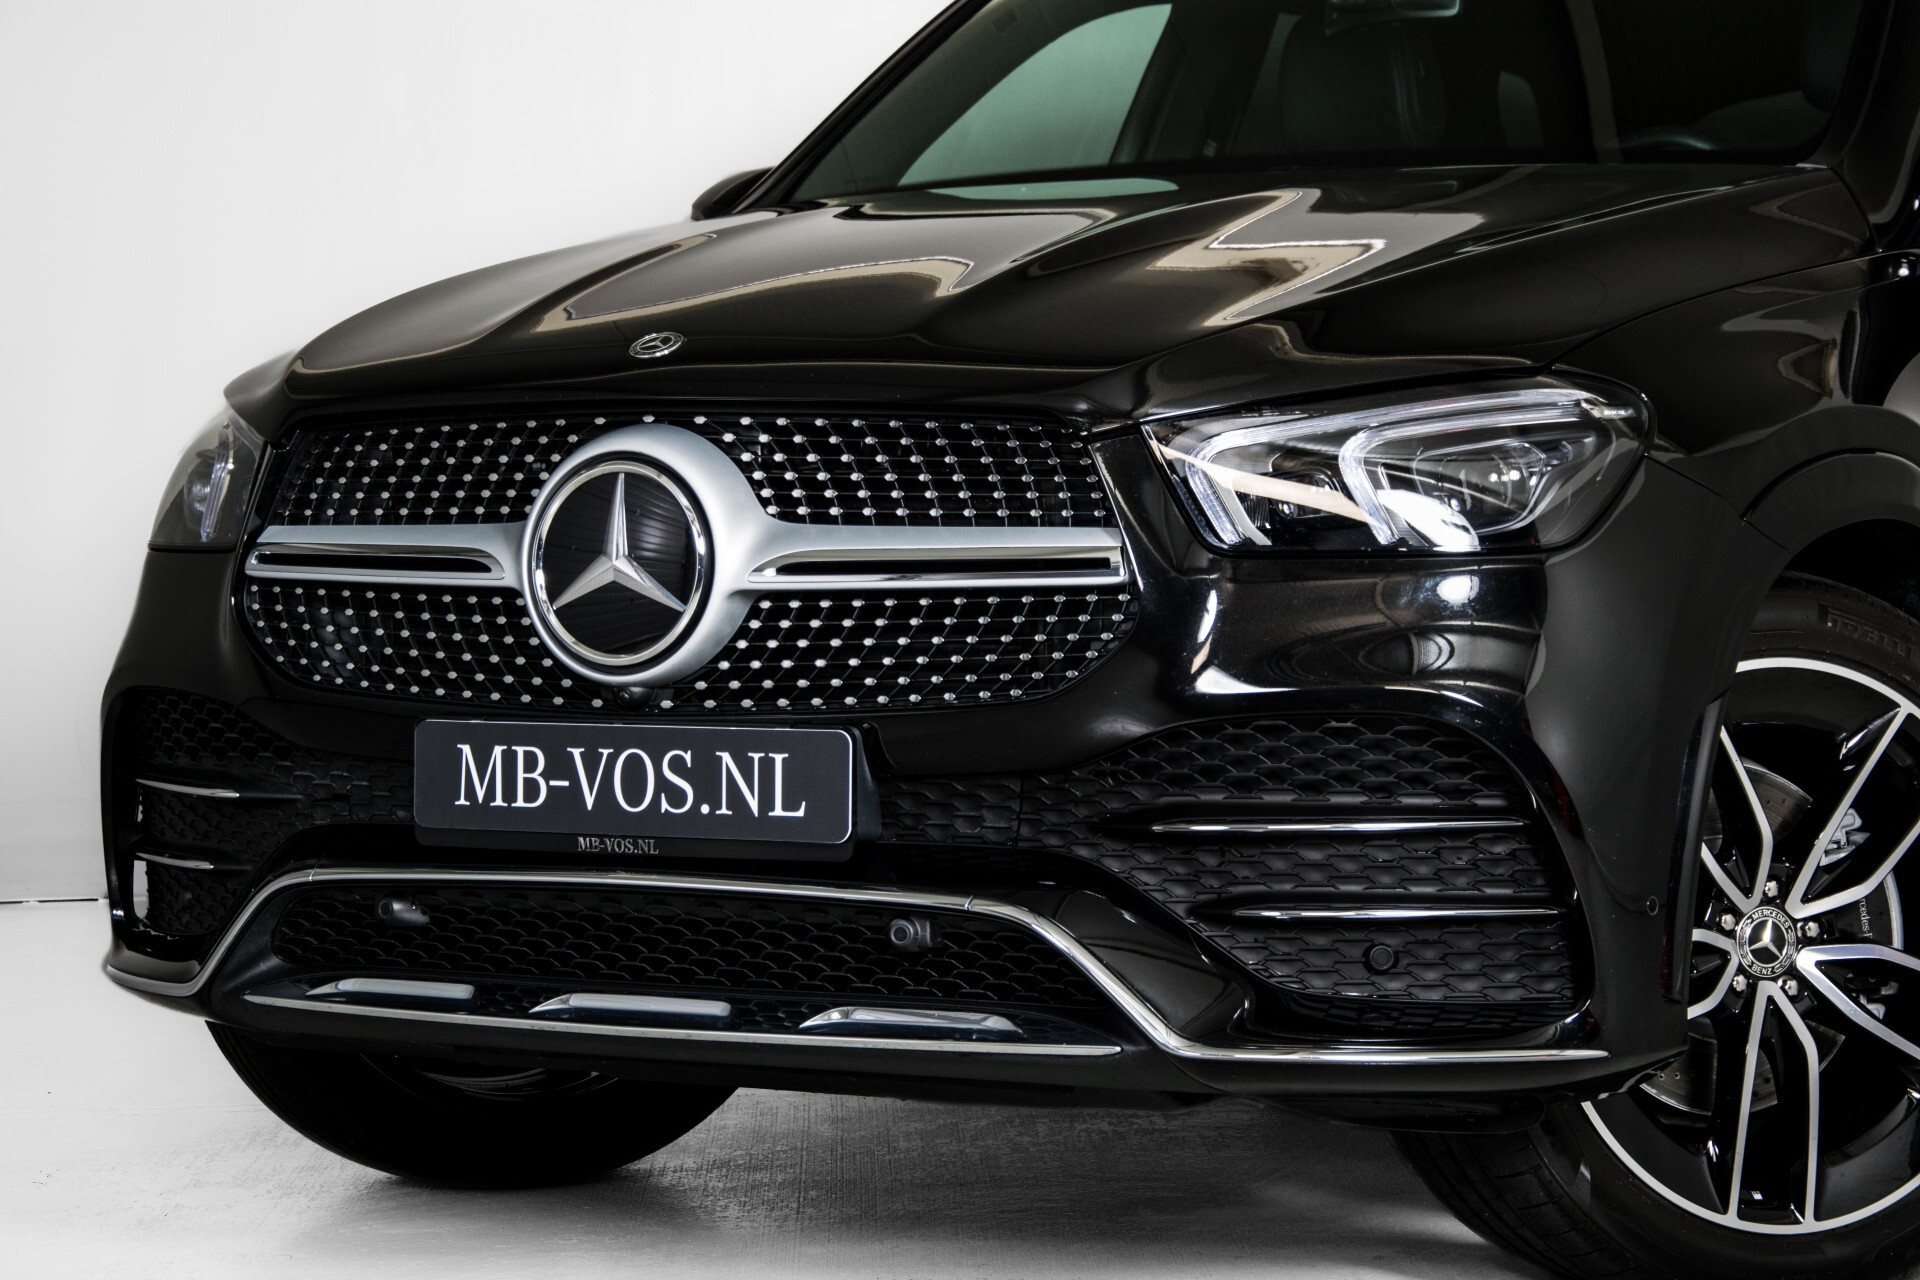 Mercedes-Benz GLE 400 d 4-M Luchtvering/Distronic/Keyless/HUD/Burmester/Nappa/360 camera/Panorama Aut9 Foto 66